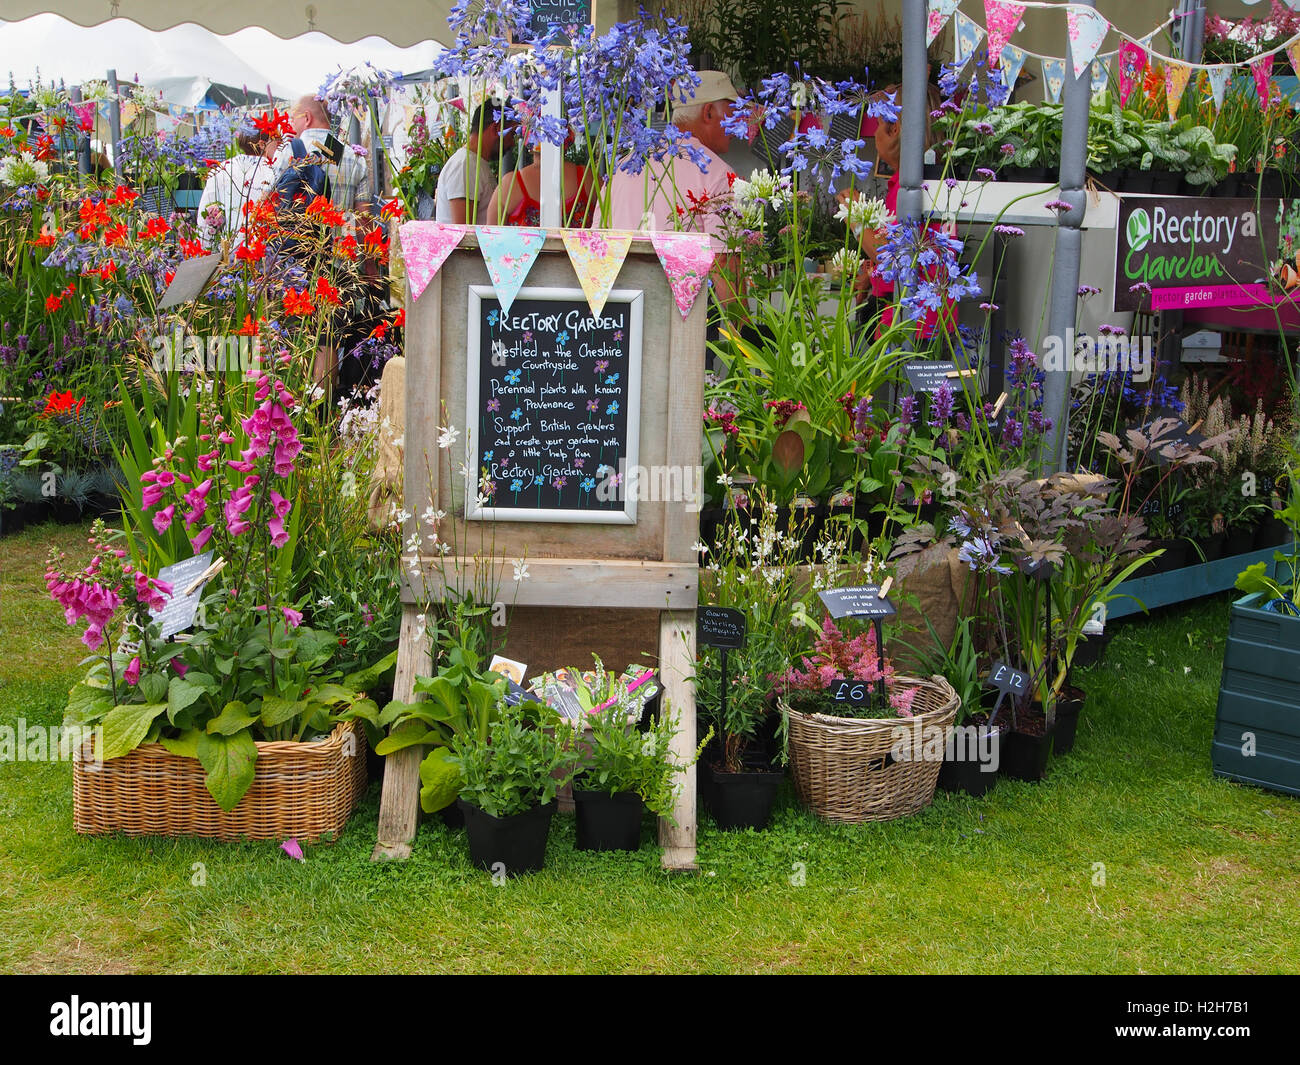 Exhibit staged by Rectory Garden Plants a nursery in Cheshire – Nursery Garden Plants